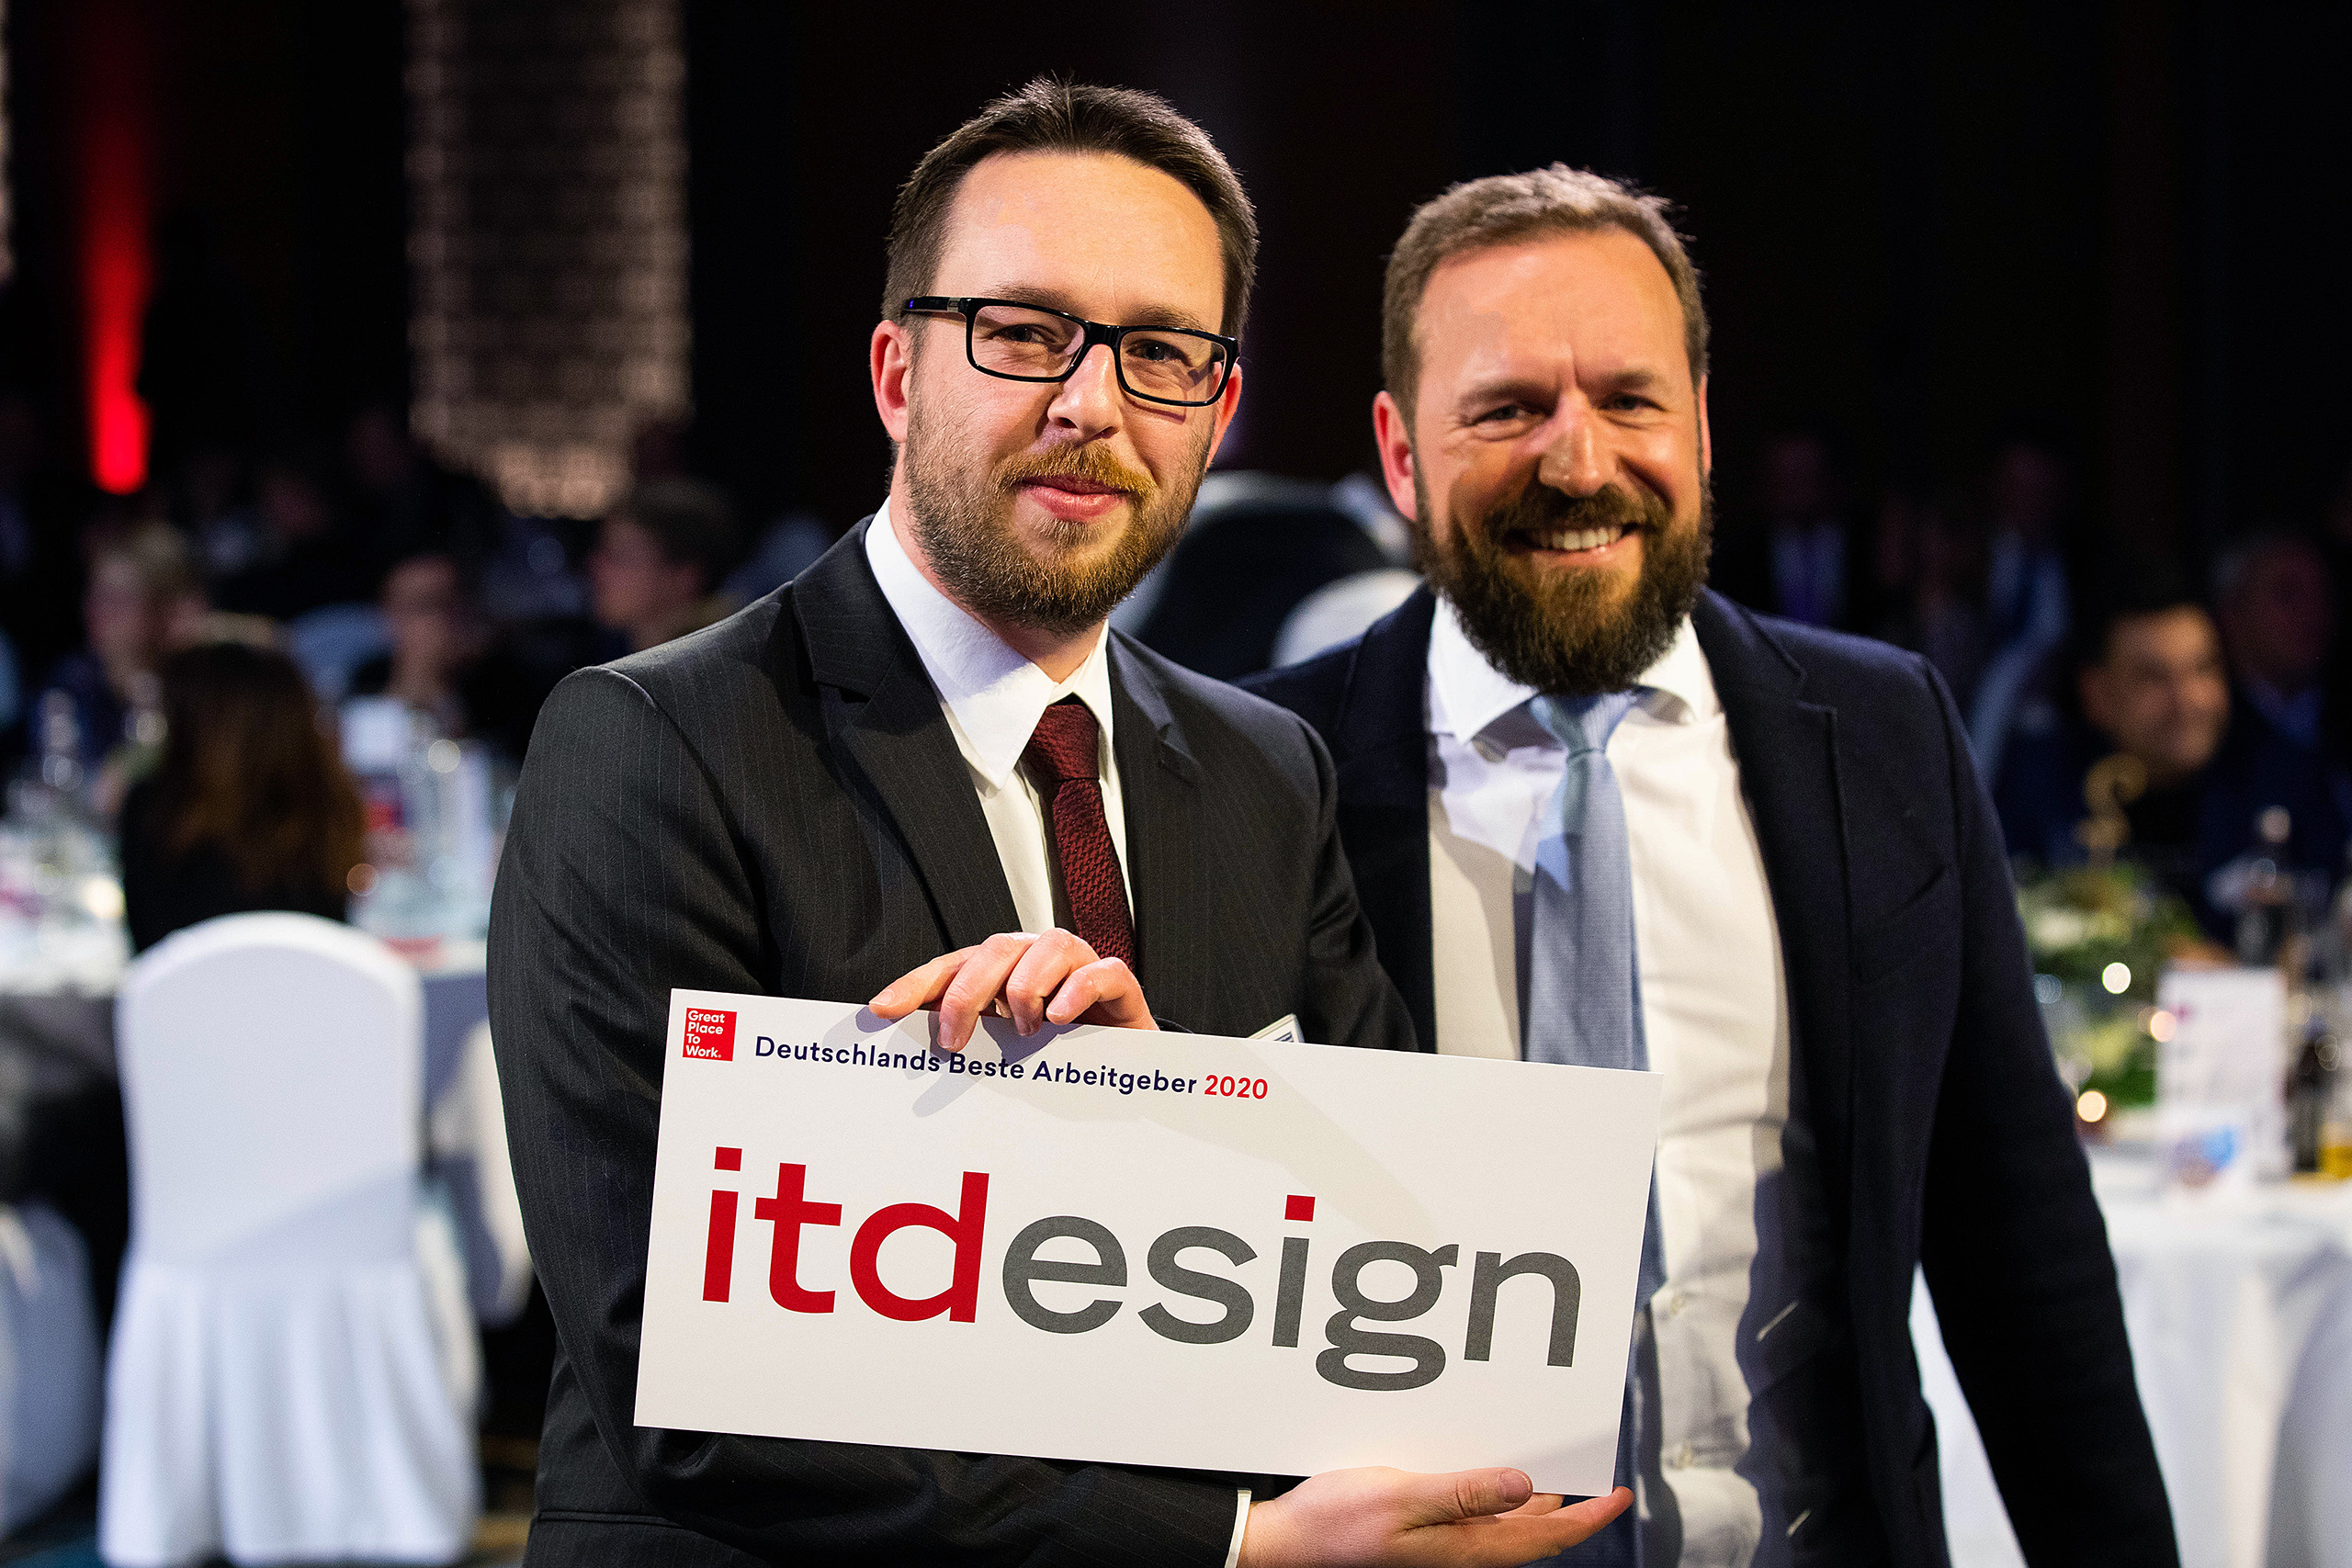 itdesign received the Great Place to Work award.